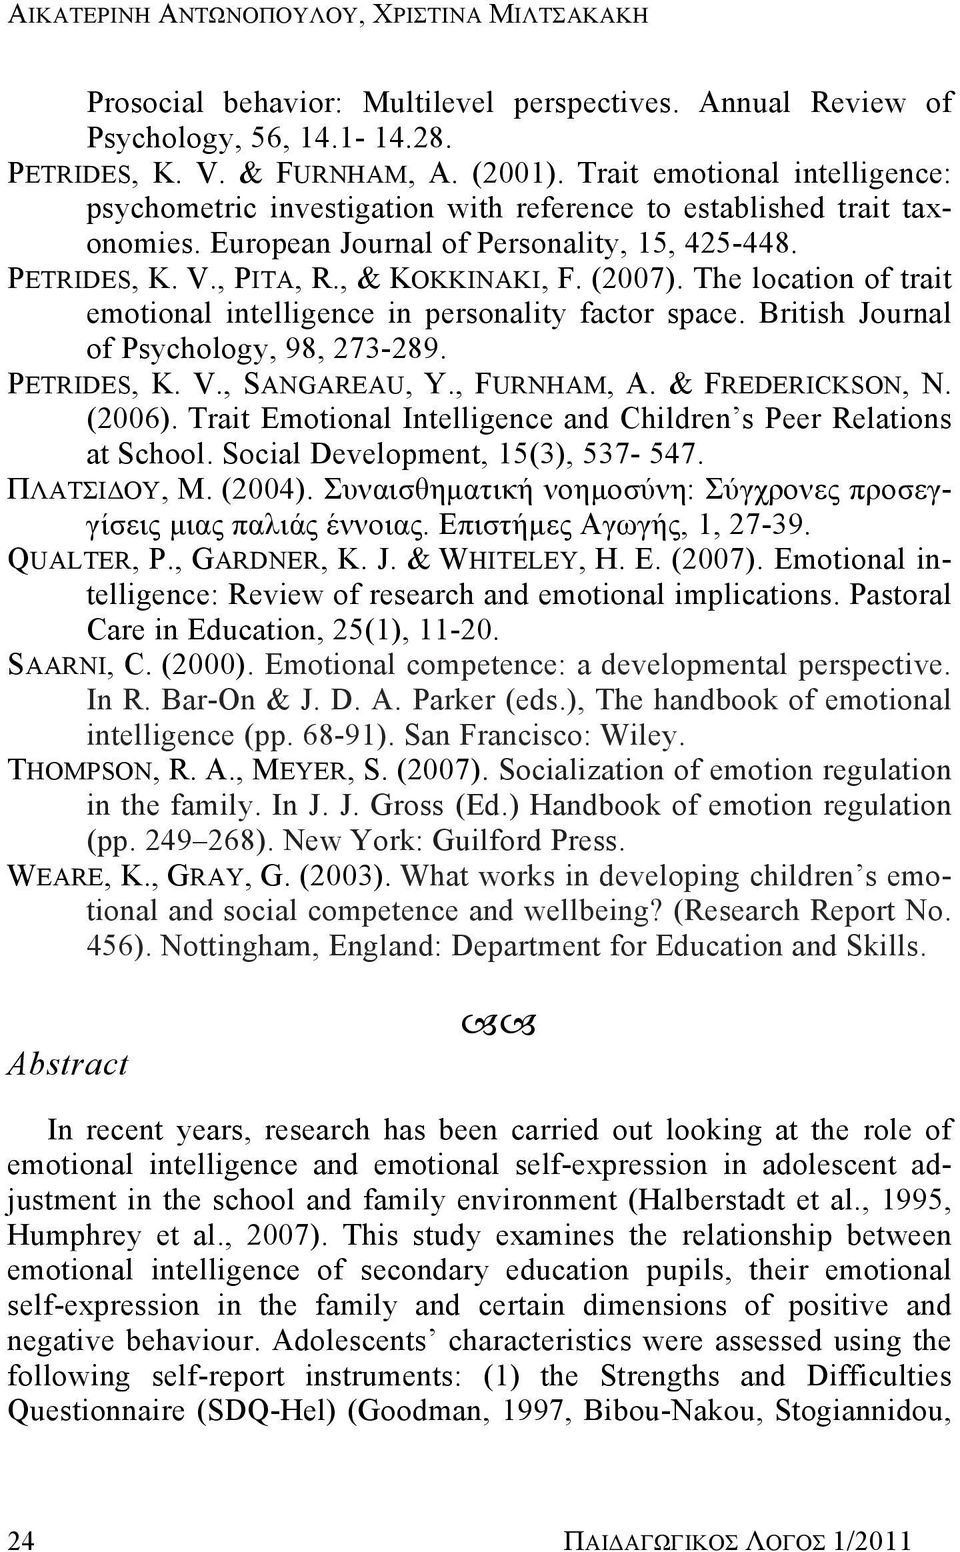 (2007). The location of trait emotional intelligence in personality factor space. British Journal of Psychology, 98, 273-289. PETRIDES, K. V., SANGAREAU, Y., FURNHAM, A. & FREDERICKSON, N. (2006).